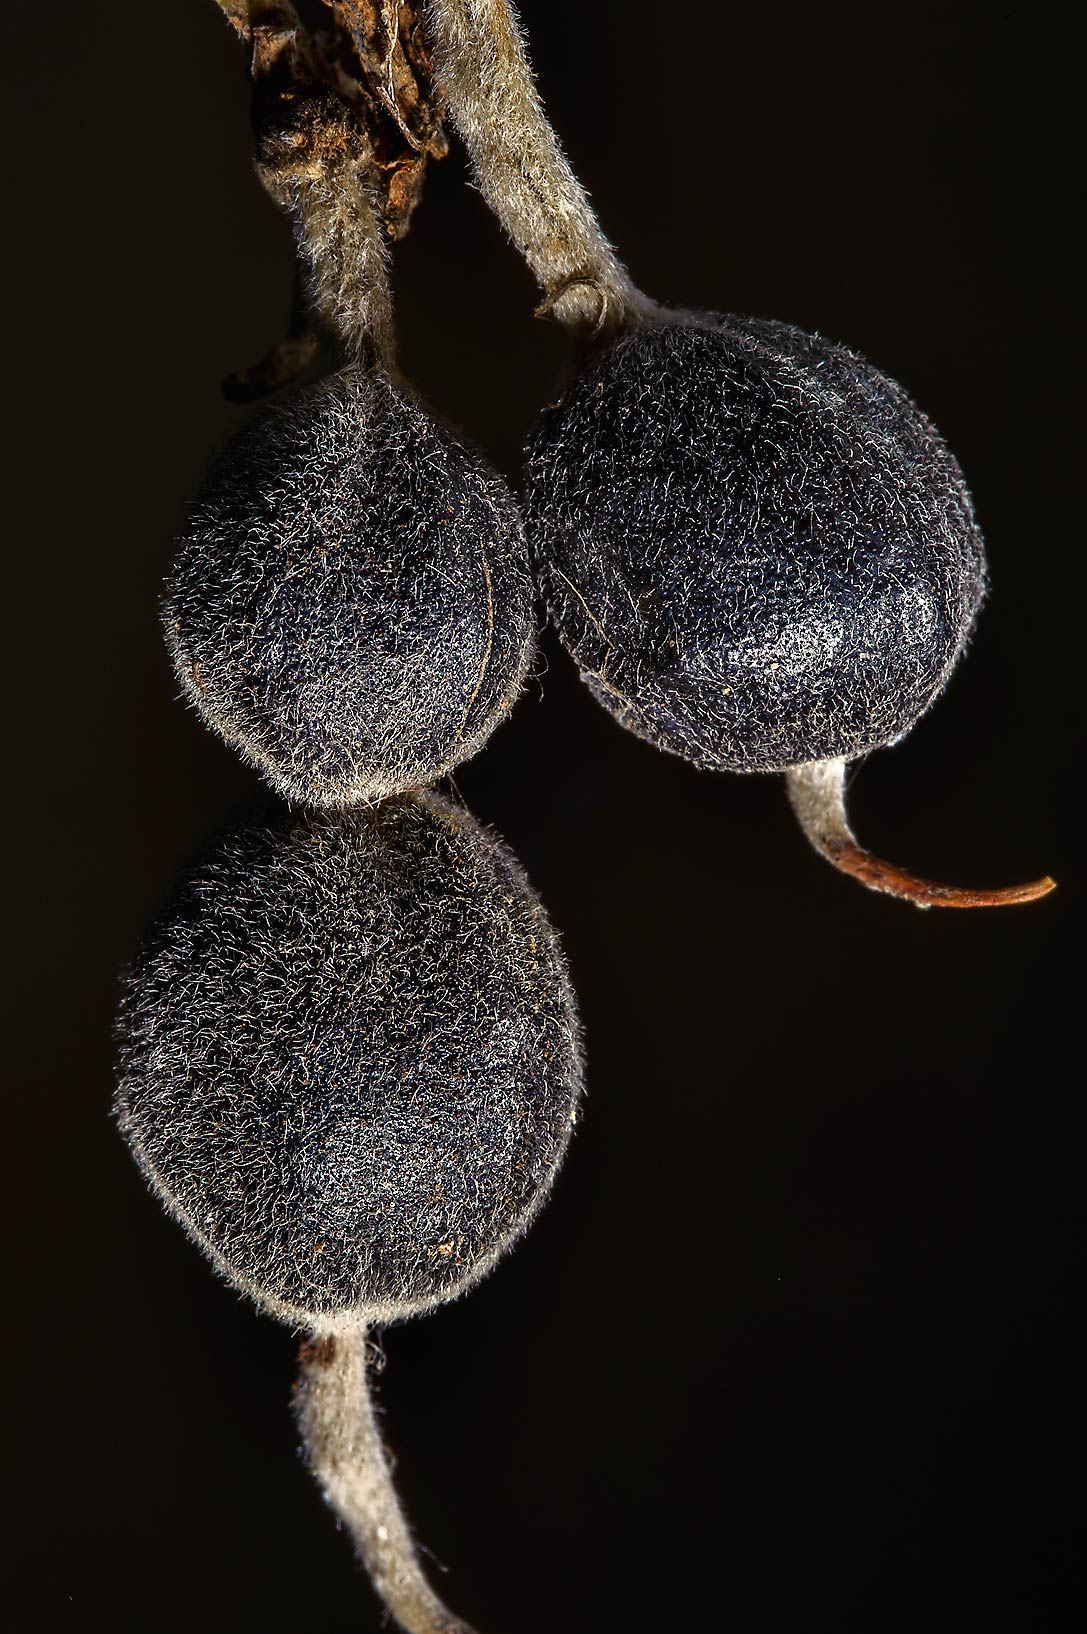 Black seeds pods of Eve's Necklace (Sophora...Pen Creek Park. College Station, Texas